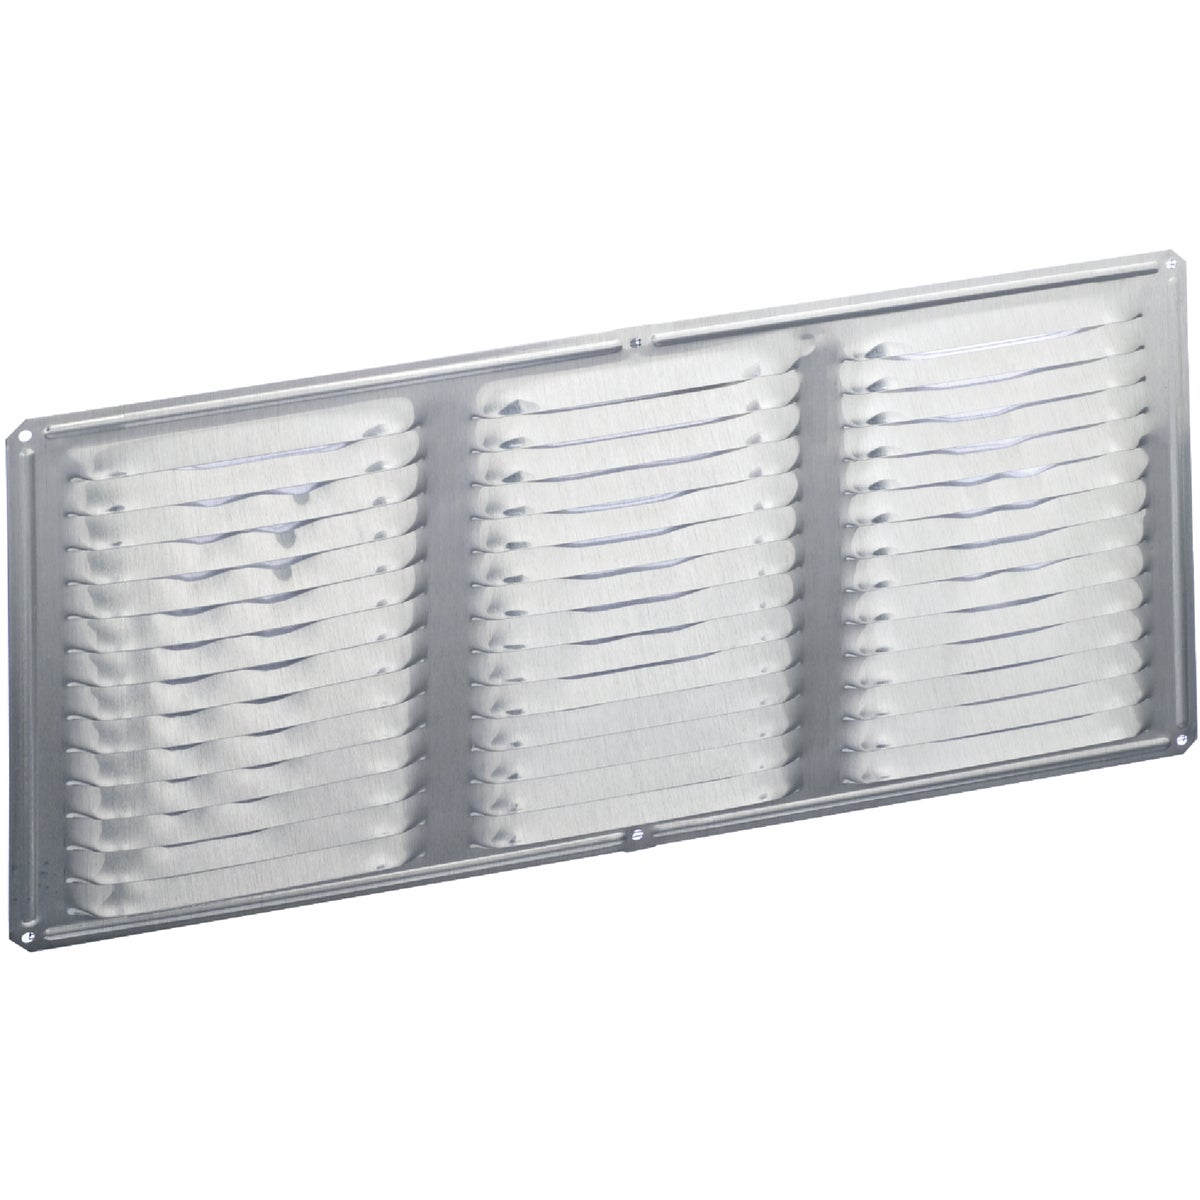 16X8 GAV UNDER EAVE VENT - 84213 by Air Vent Inc